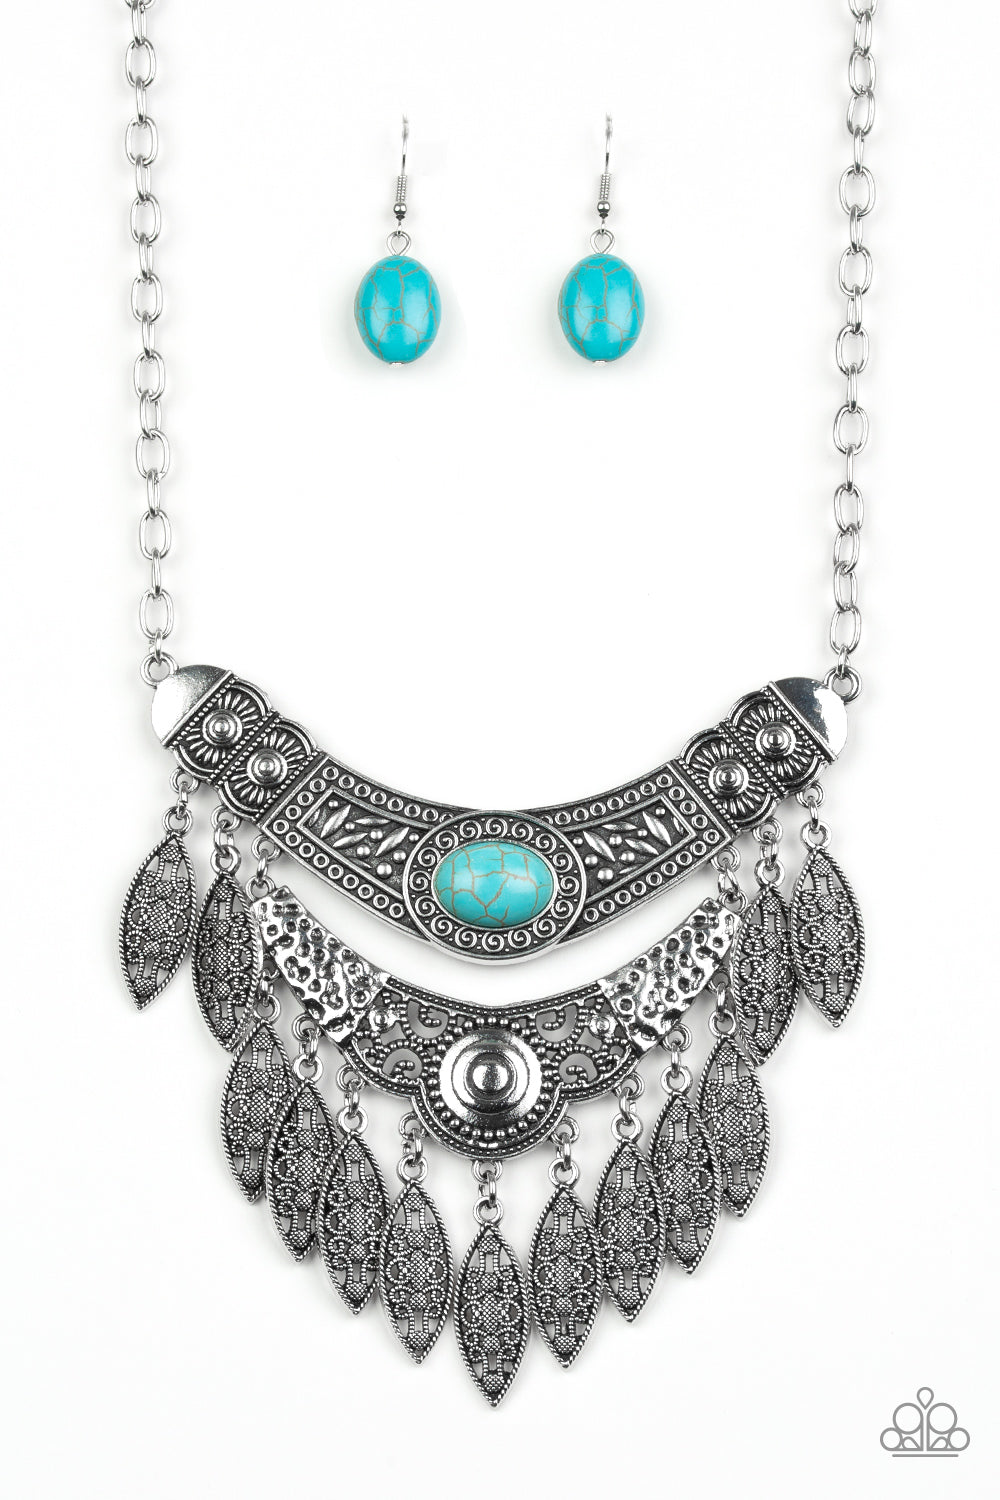 Island Queen - Blue Paparazzi Jewelry Necklace